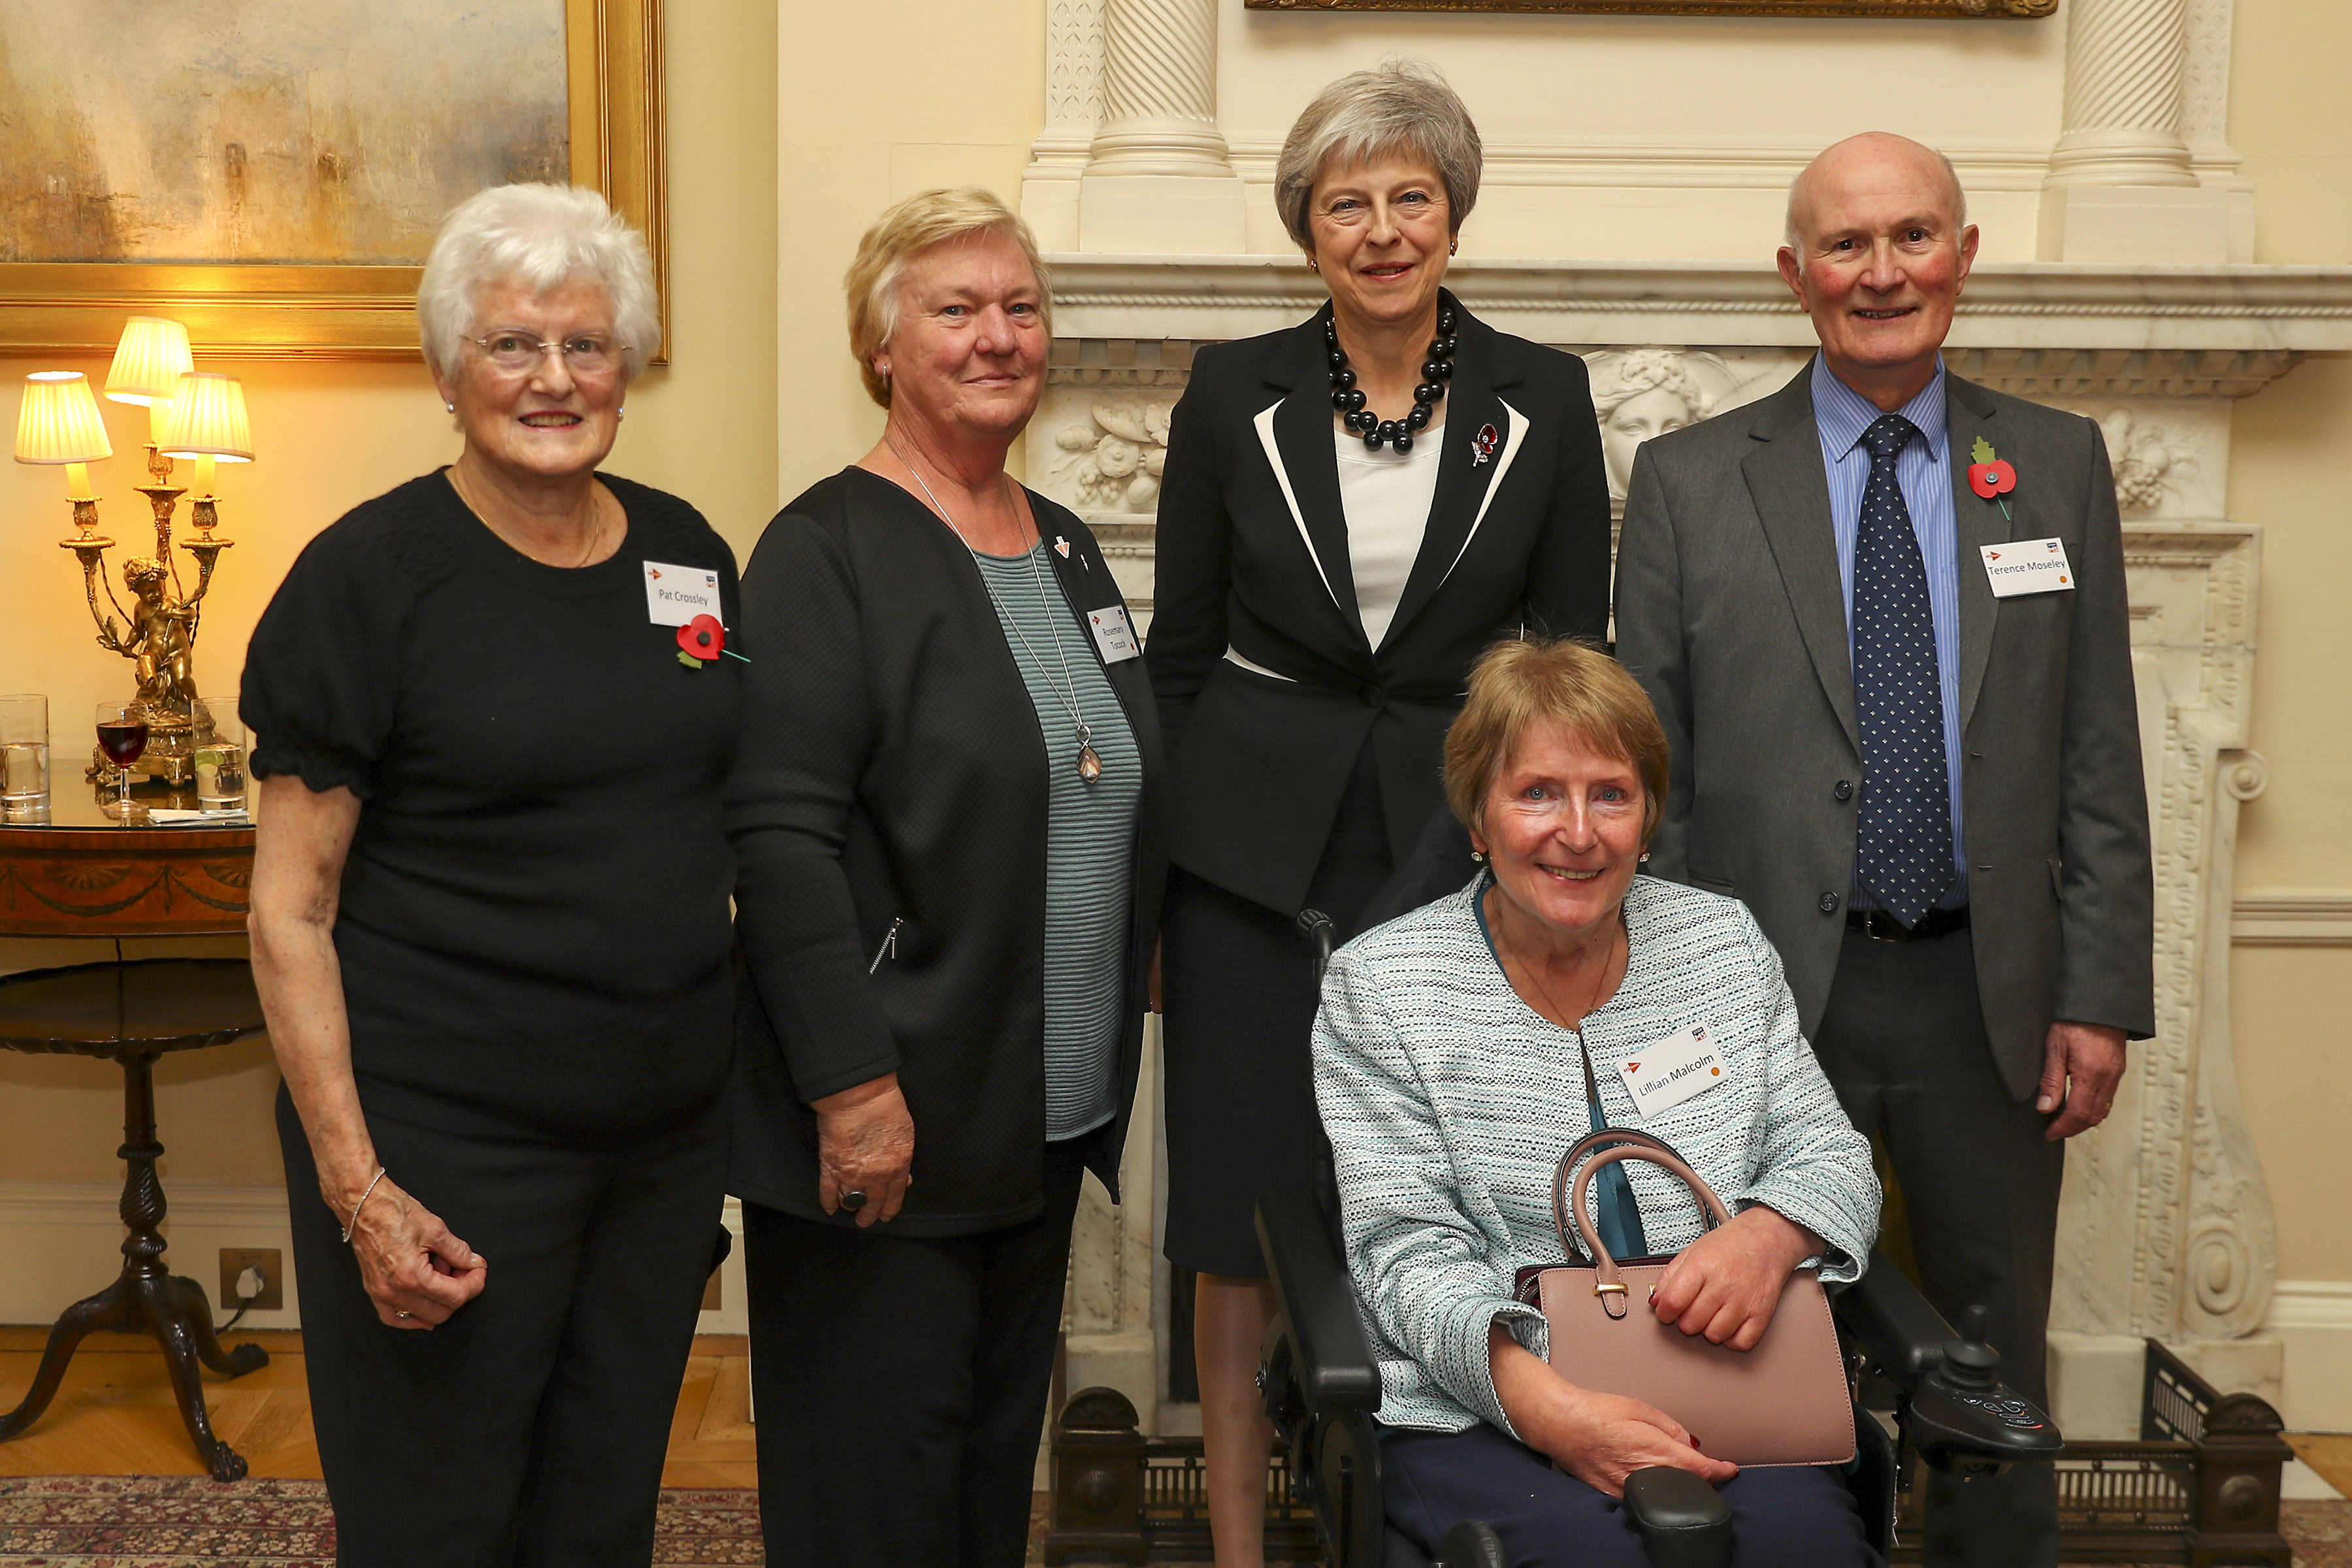 Lillian Malcolm (front row) was personally thanked by the Prime Minister at Downing Street